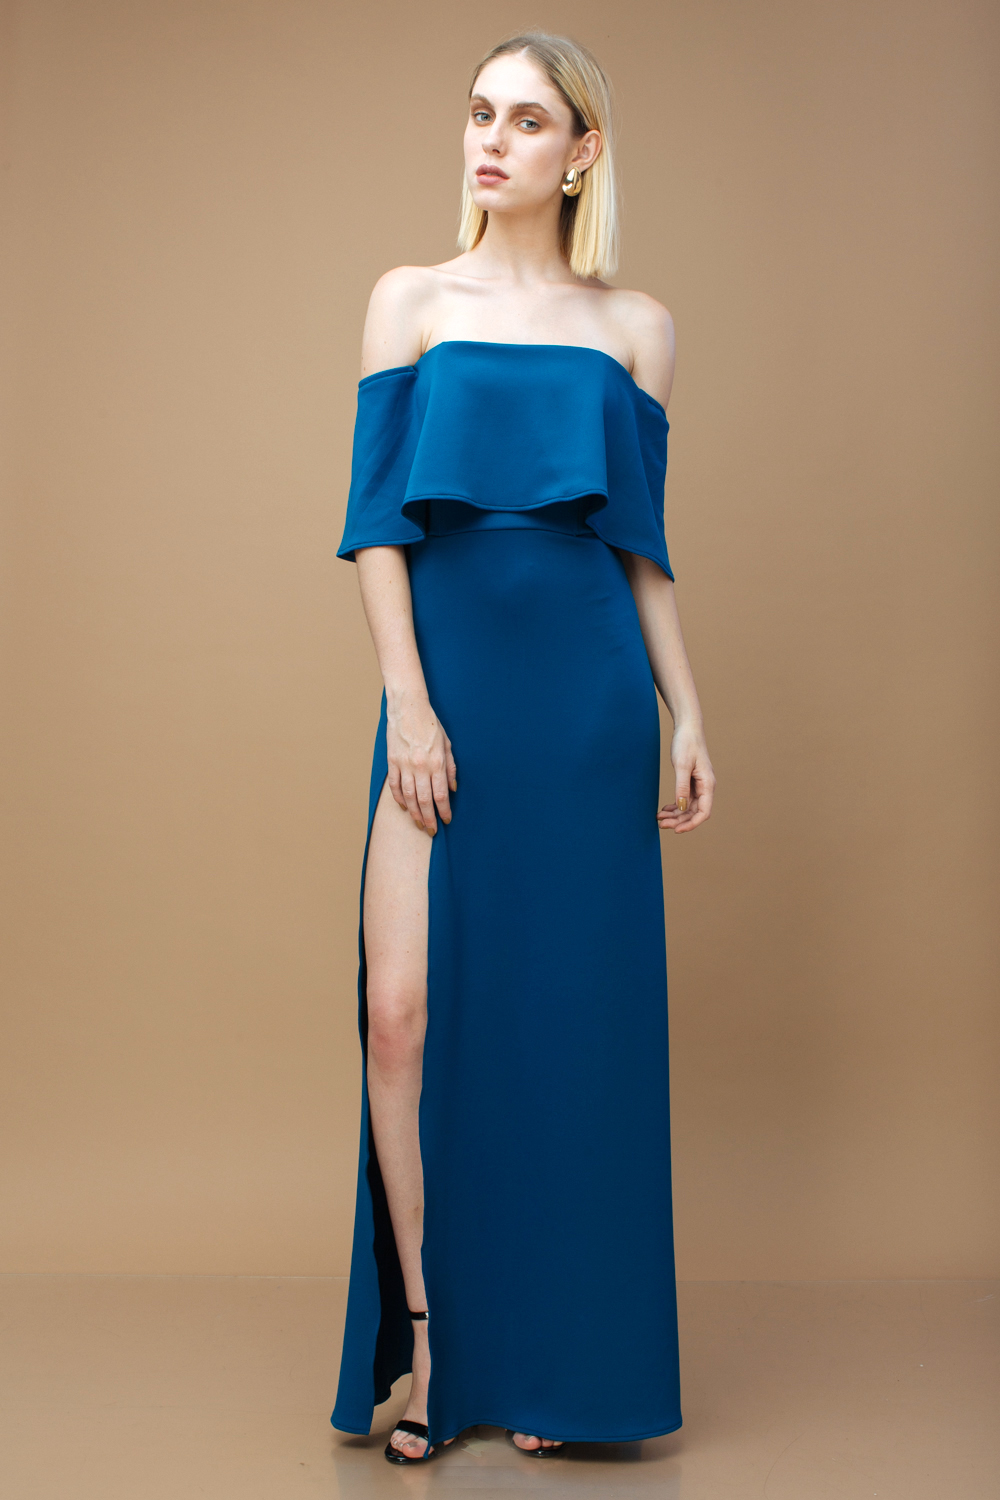 13474d03e94c THE SPECTRUM Two Way Off Shoulder and Flounce Scuba Maxi Dress with High  Slit (Teal)